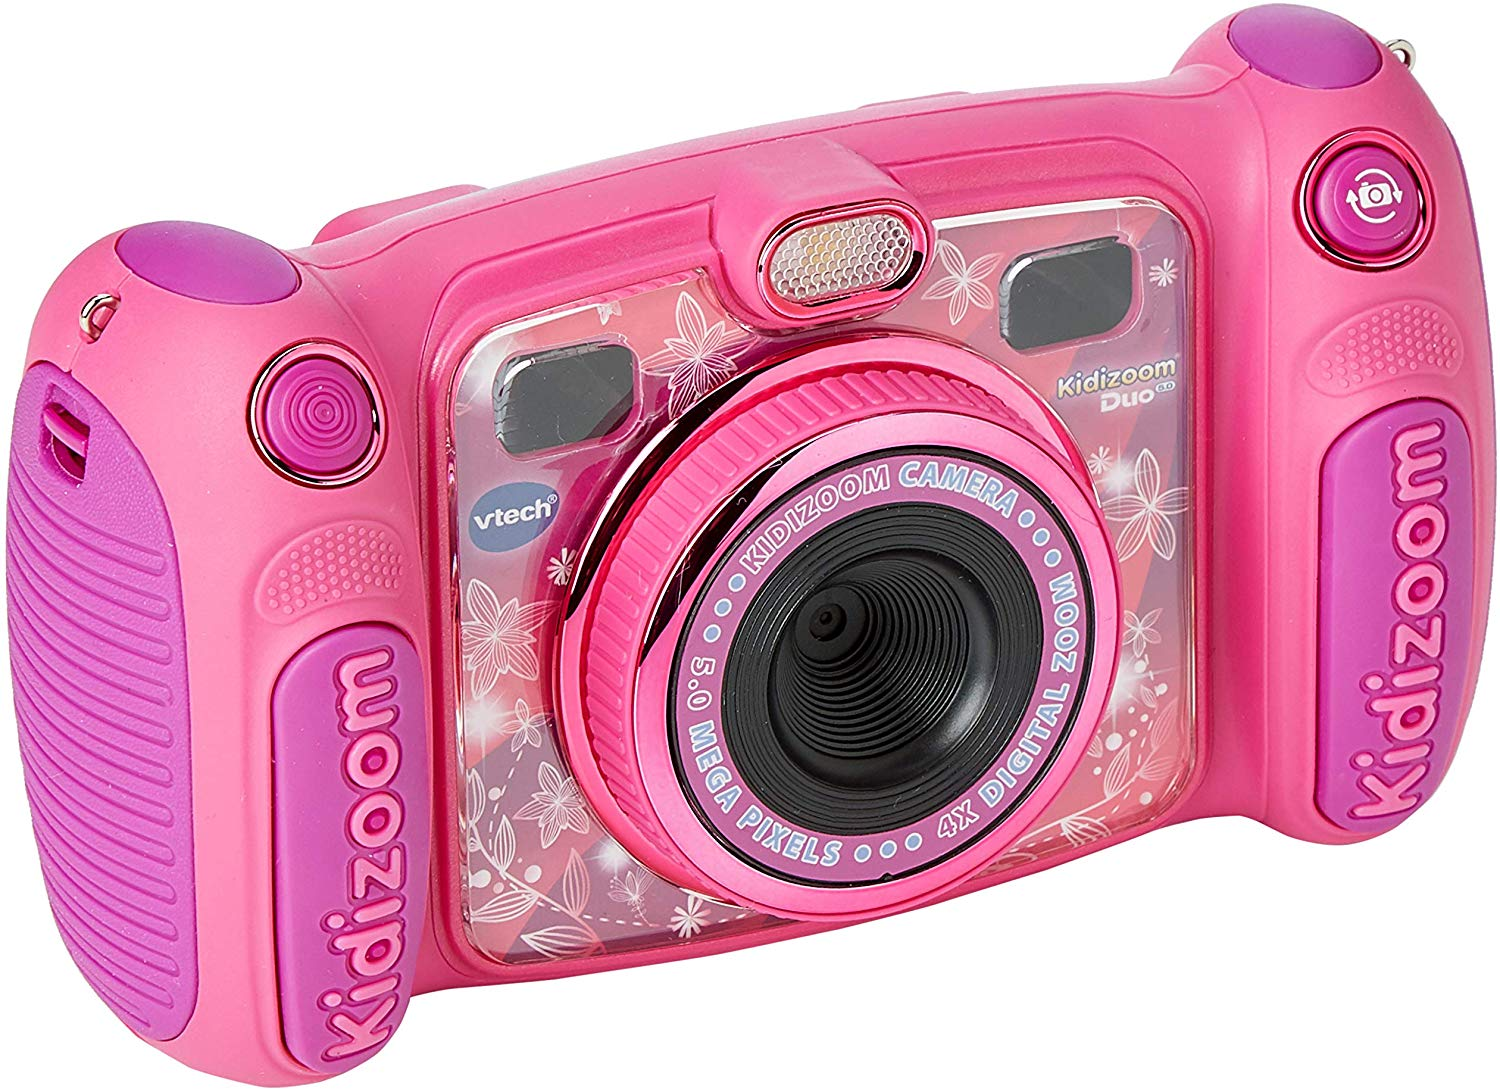 VTech Kidizoom Duo 5.0, Pink £32 on Amazon